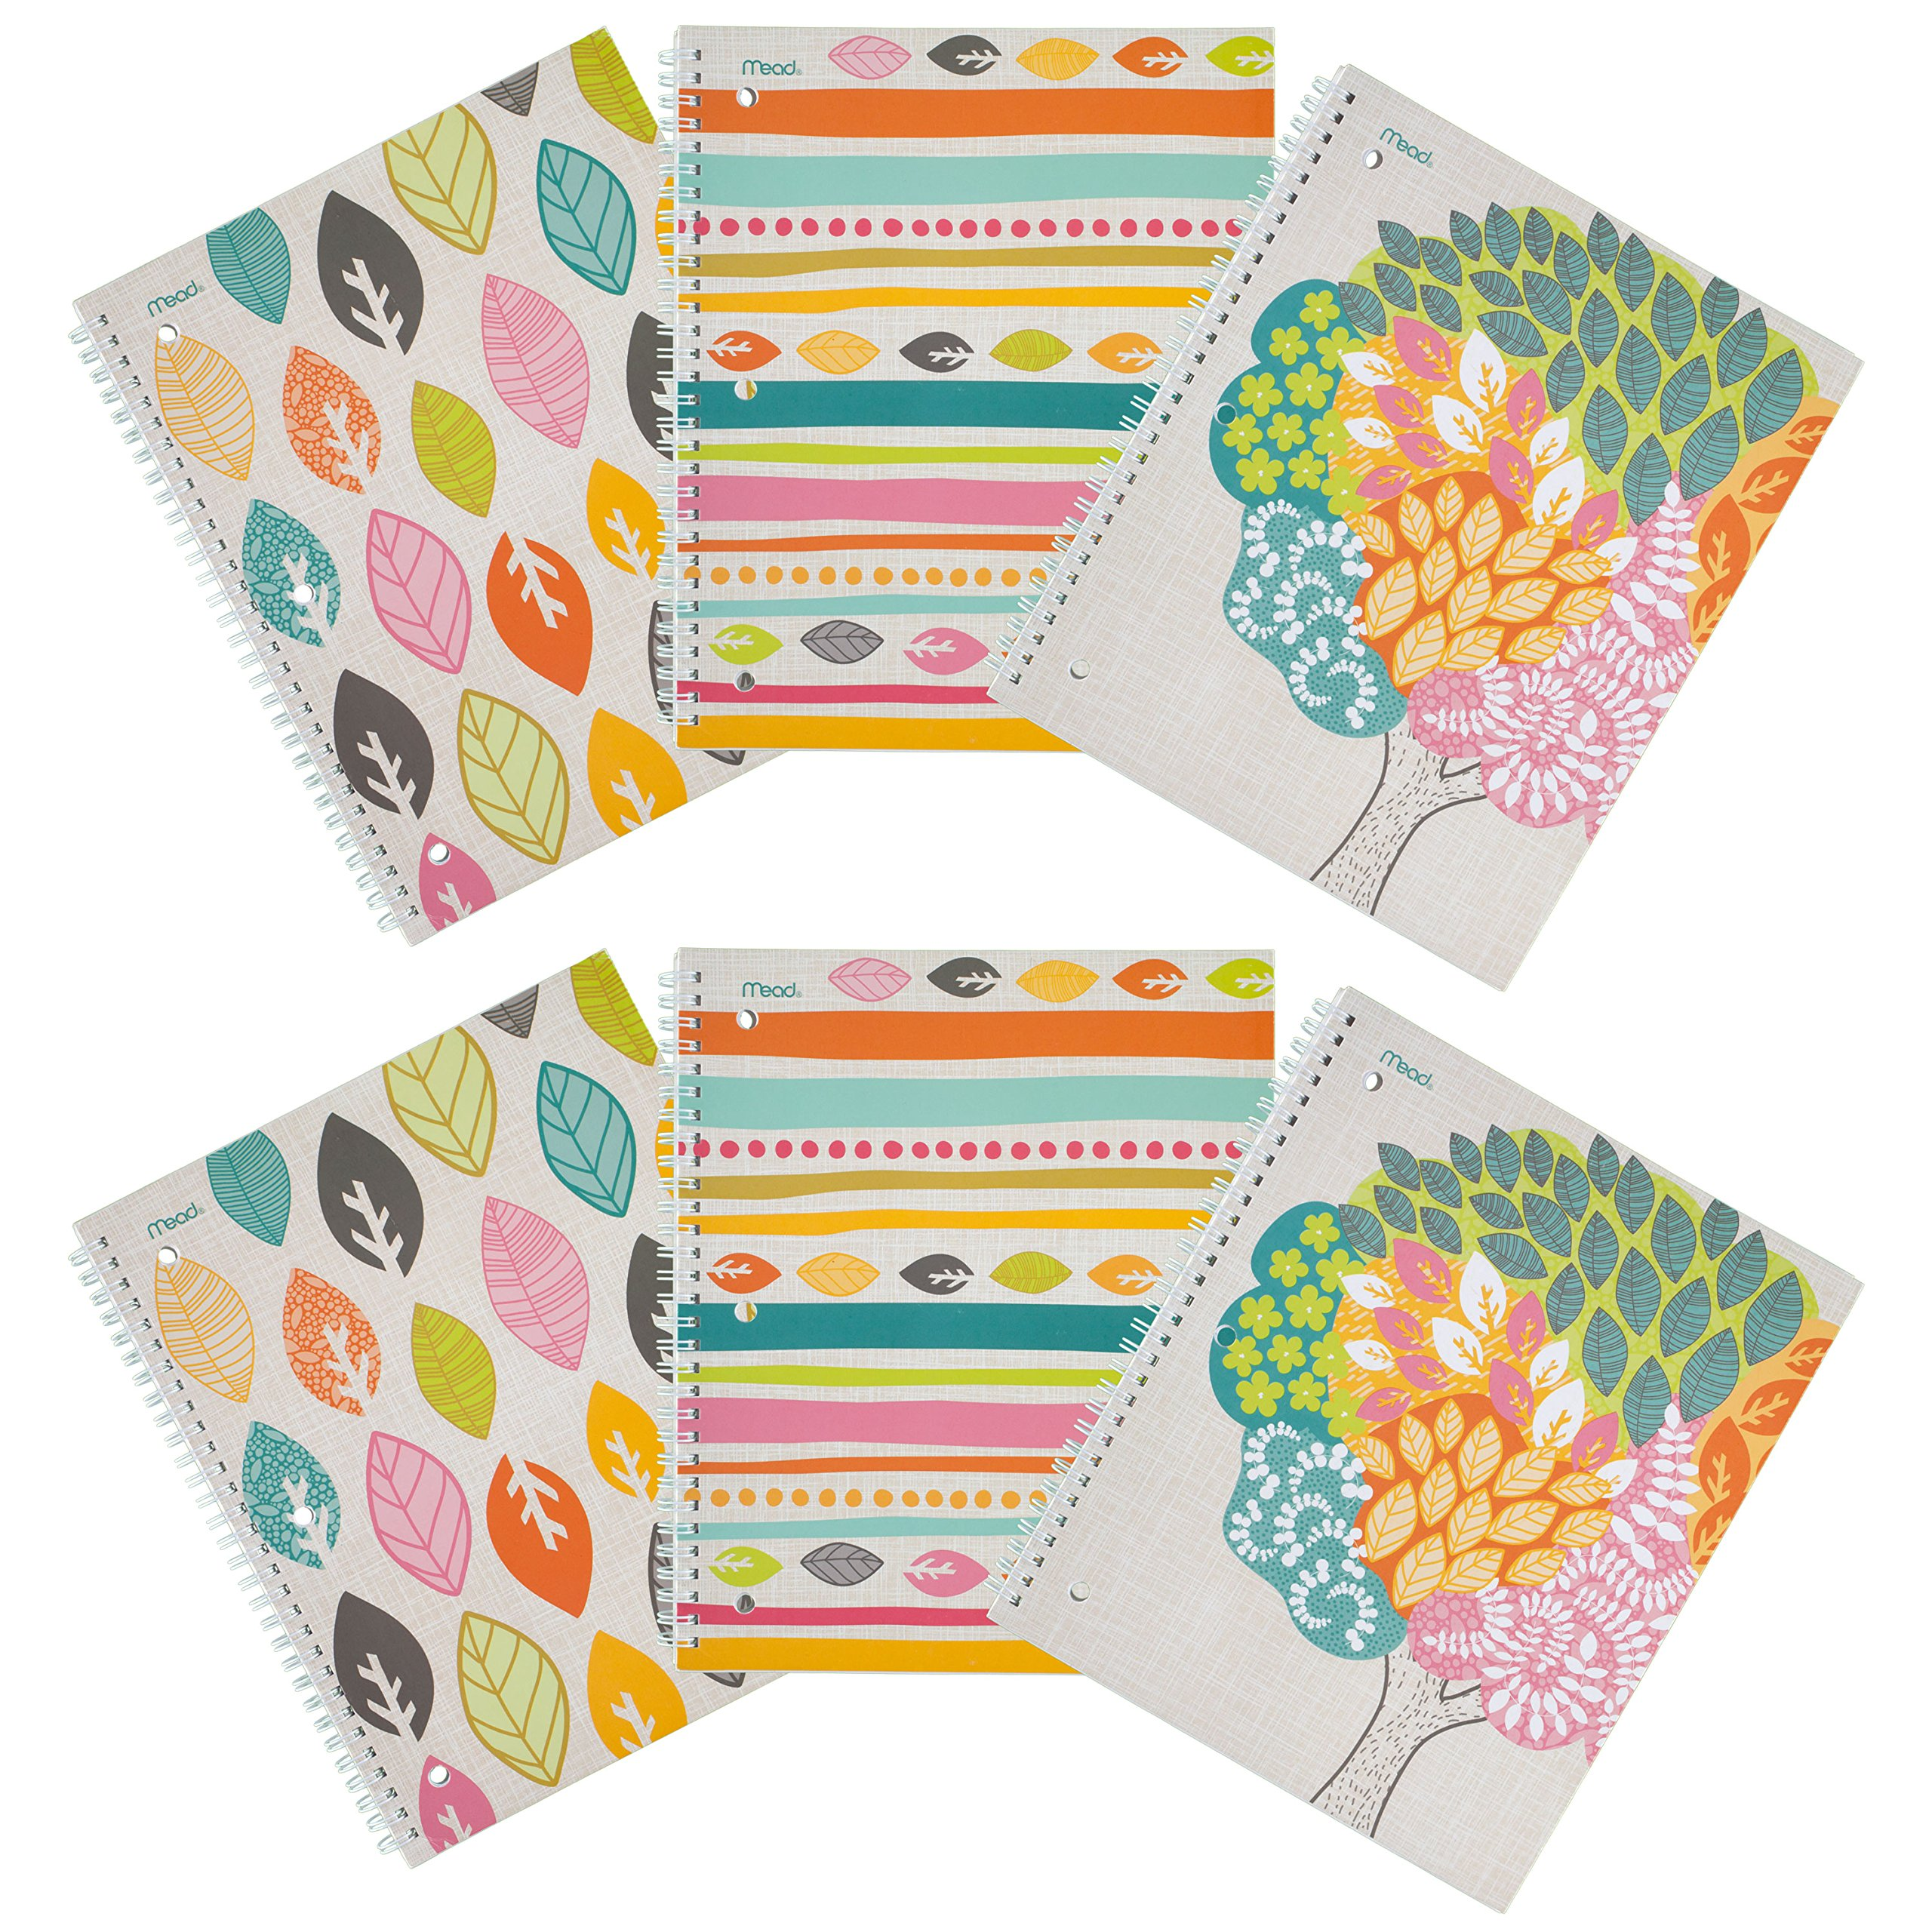 Mead Spiral Notebooks, 1 Subject, College Ruled, Assorted Botanical Boutique Designs, 6 Pack (73081)